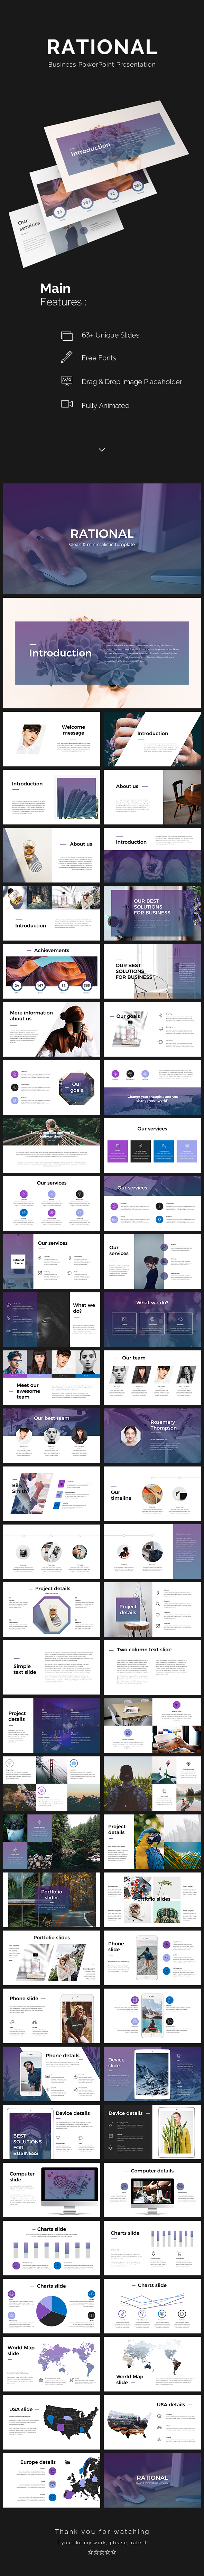 Rational PowerPoint Presentation - PowerPoint Templates Presentation Templates